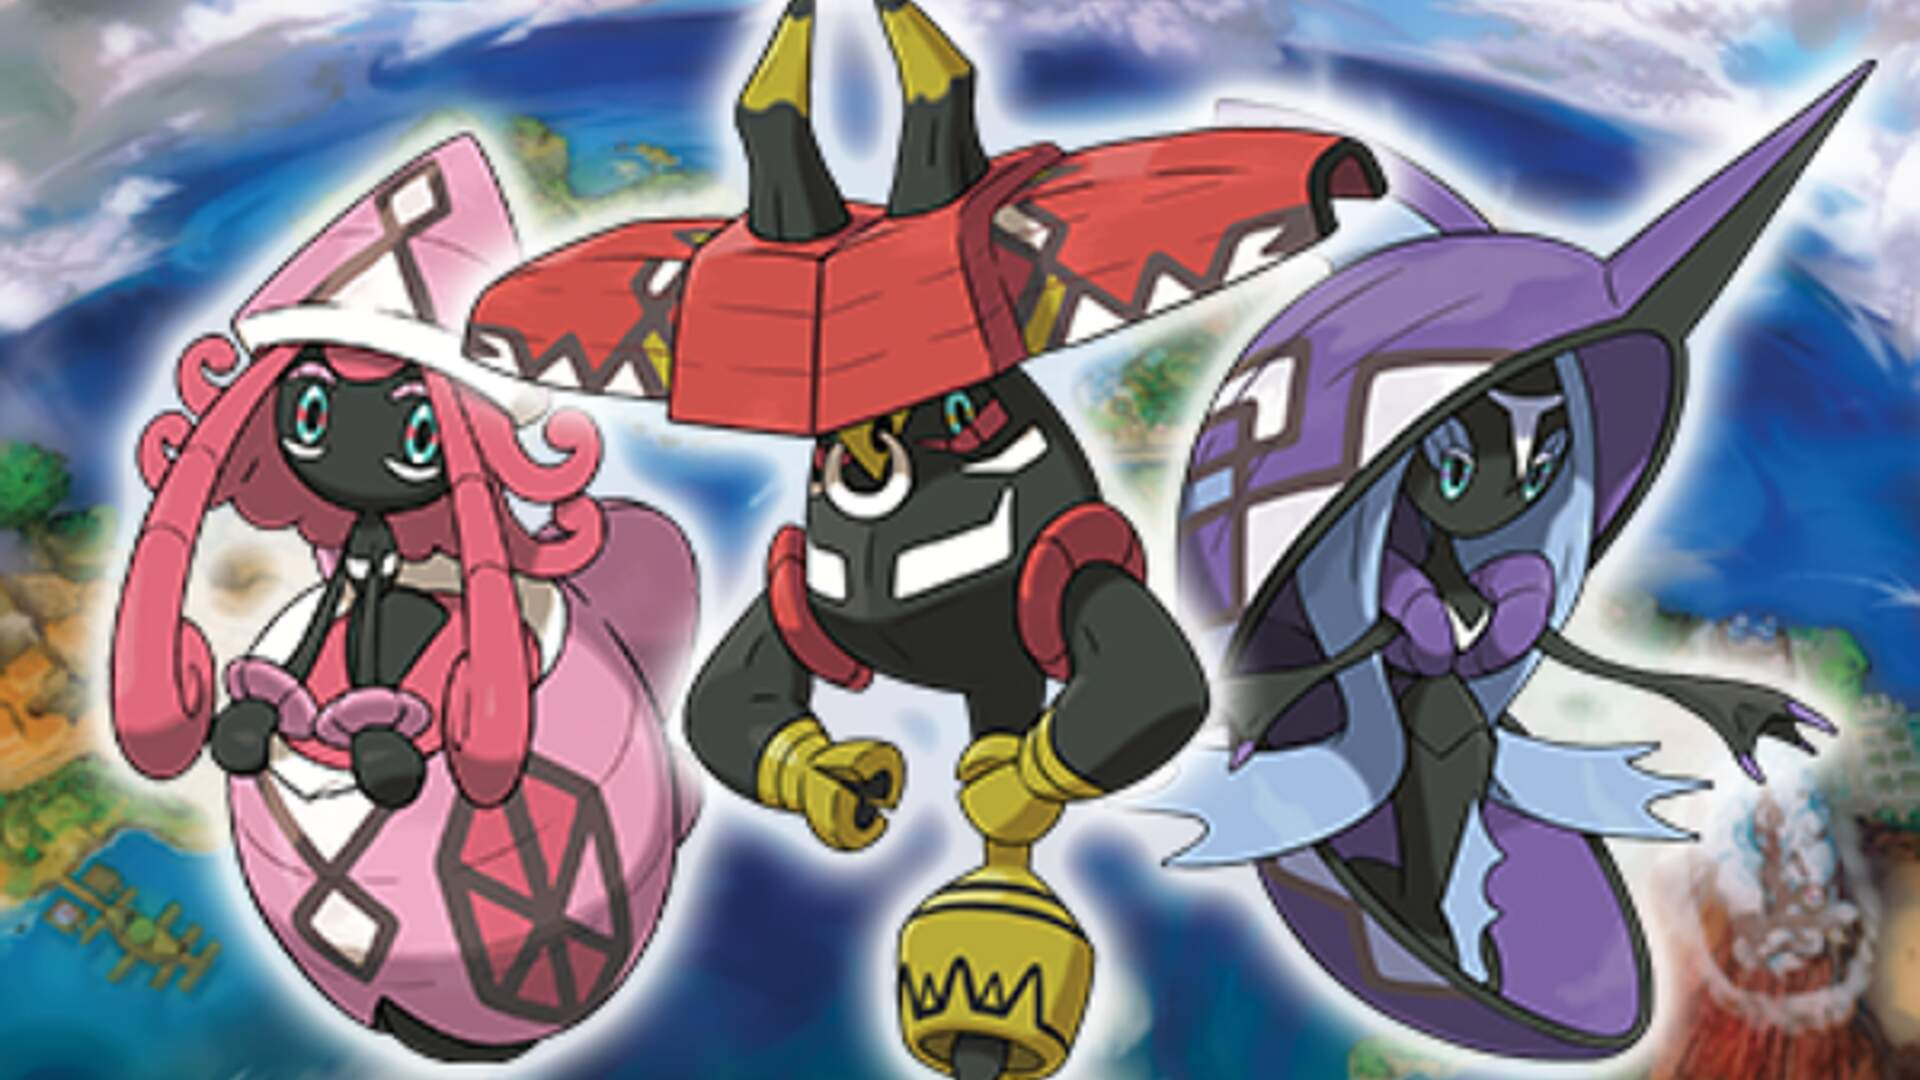 Pokemon Sun and Moon - Where to Get Tapu Koko, Tapu Lele, Tapu Bulu, and Tapu Fini